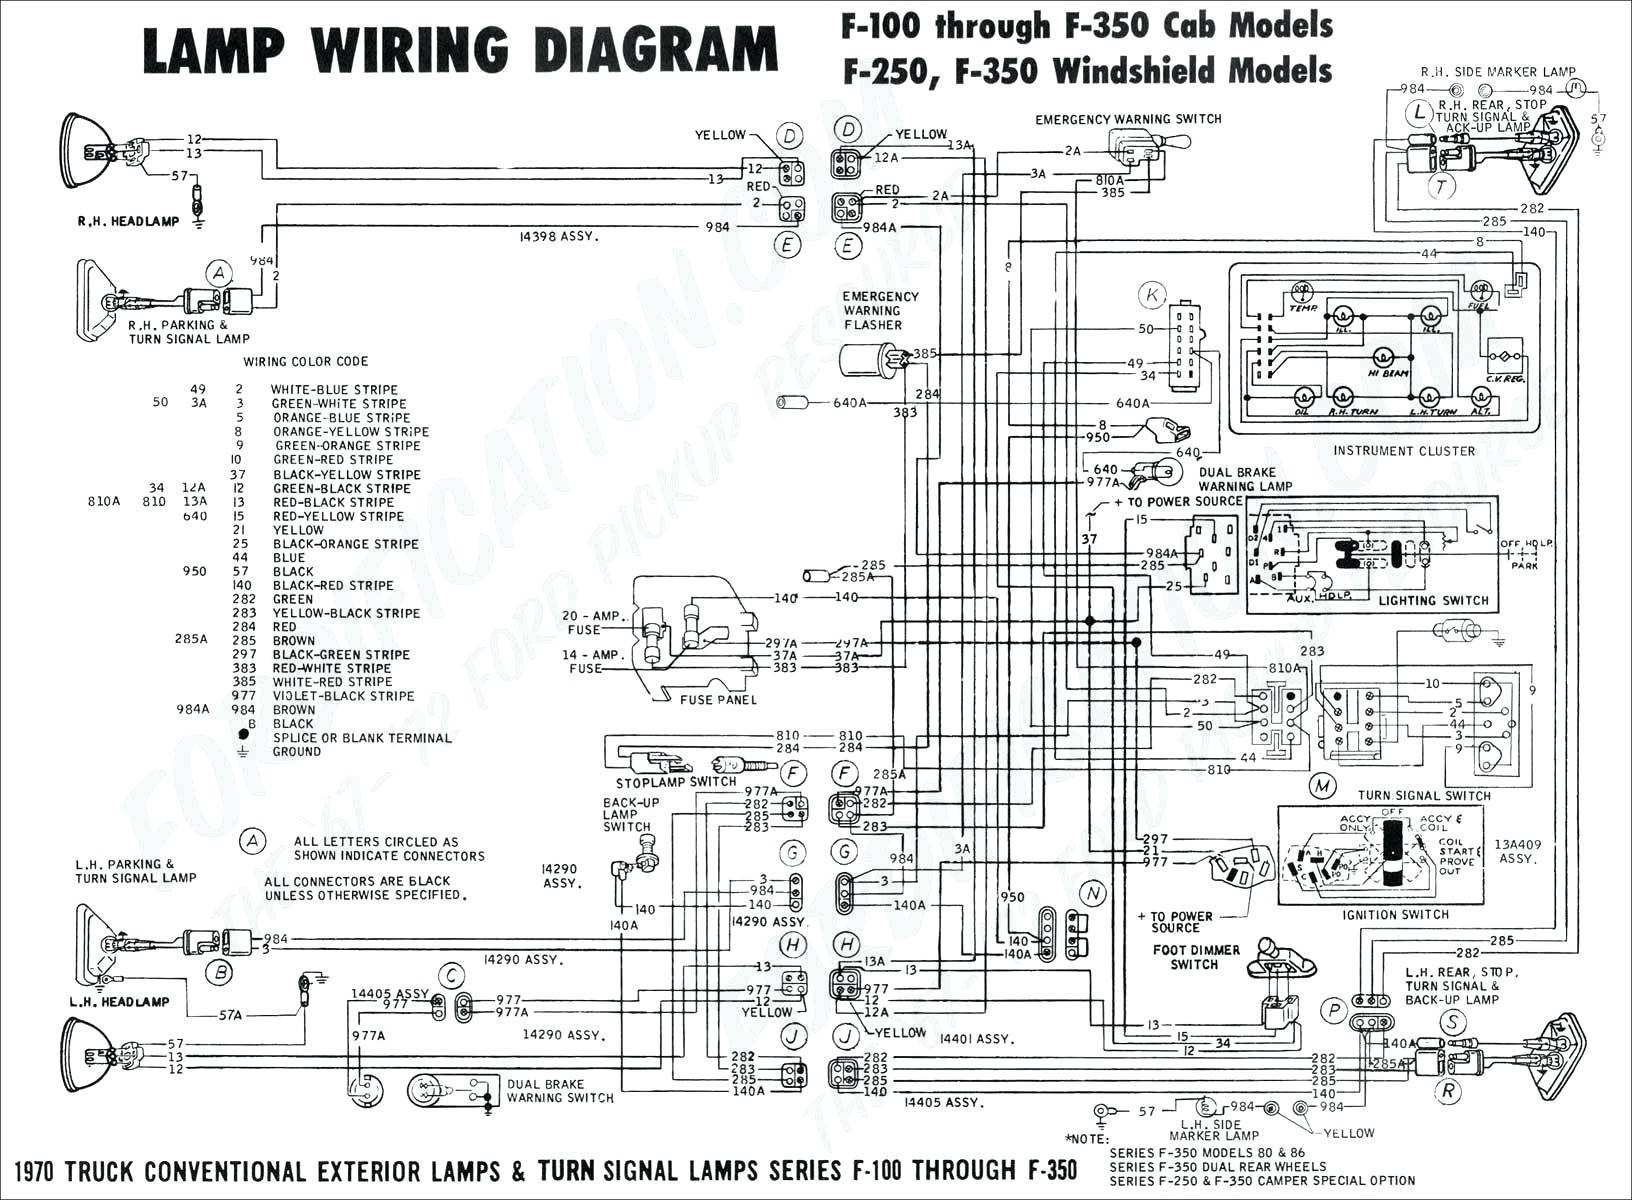 1999 Vw Beetle Engine Diagram Vw R32 Wiring Diagram Experts Wiring Diagram • Of 1999 Vw Beetle Engine Diagram